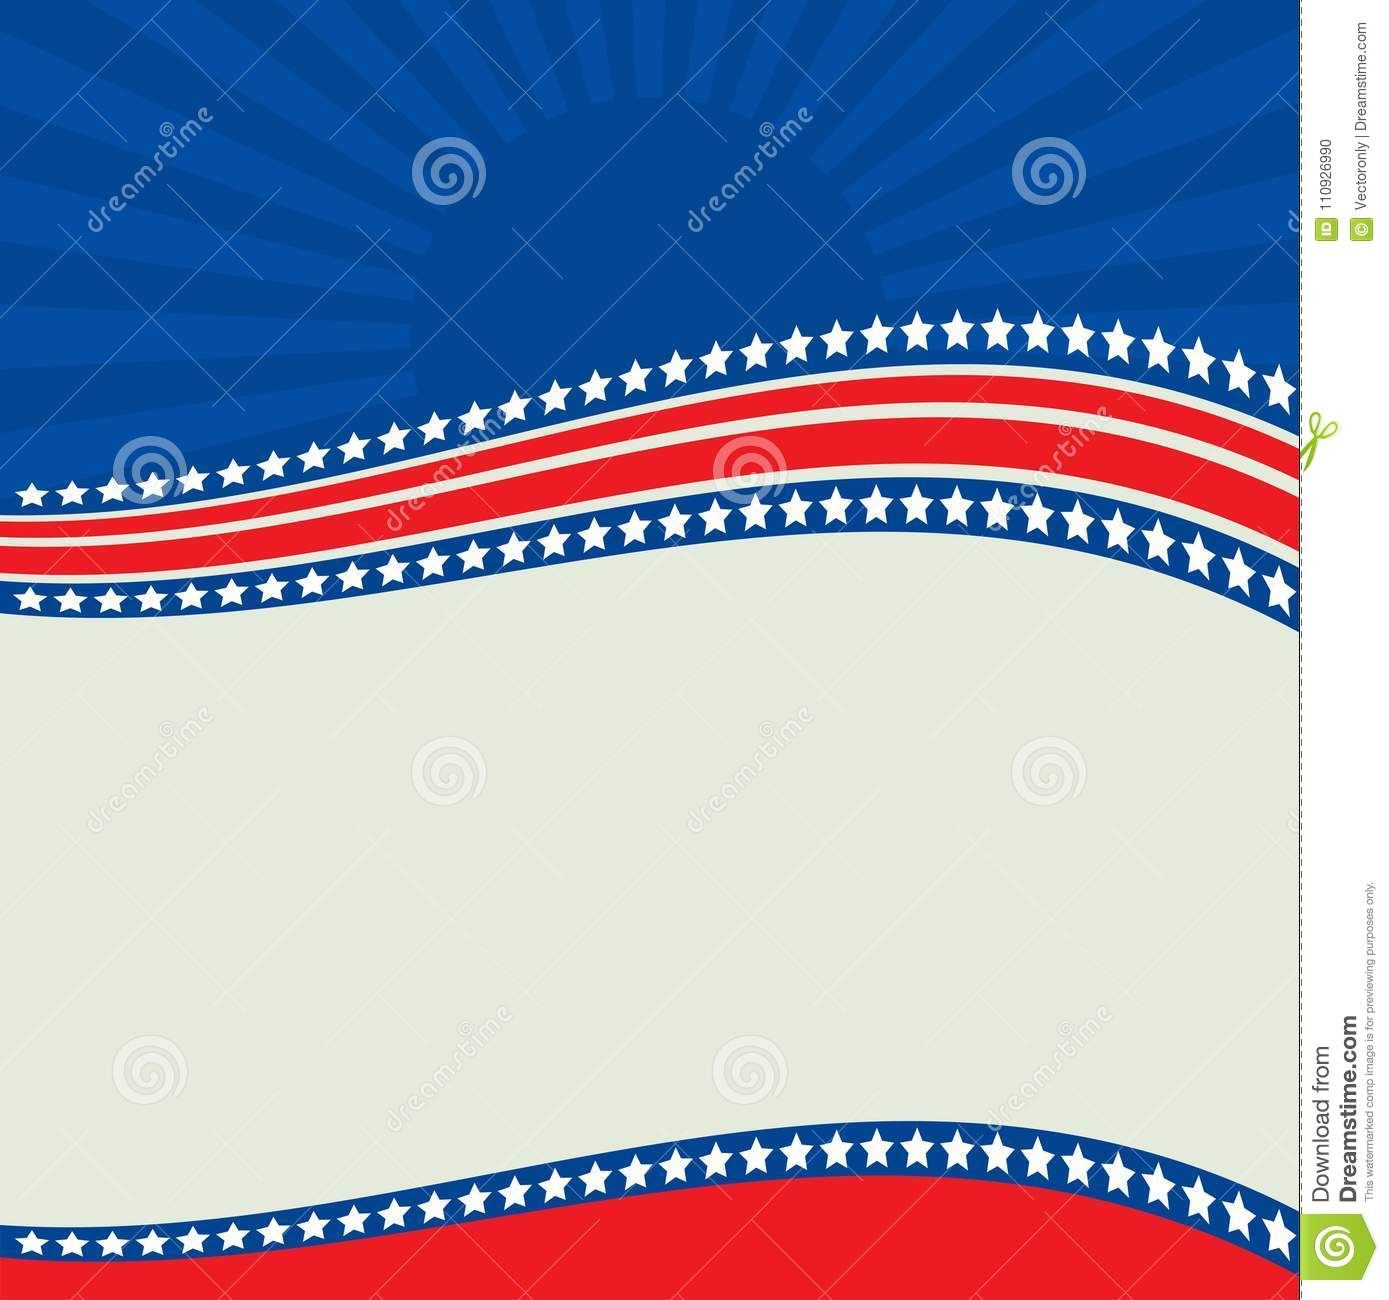 American Patriotic border, background, with stars